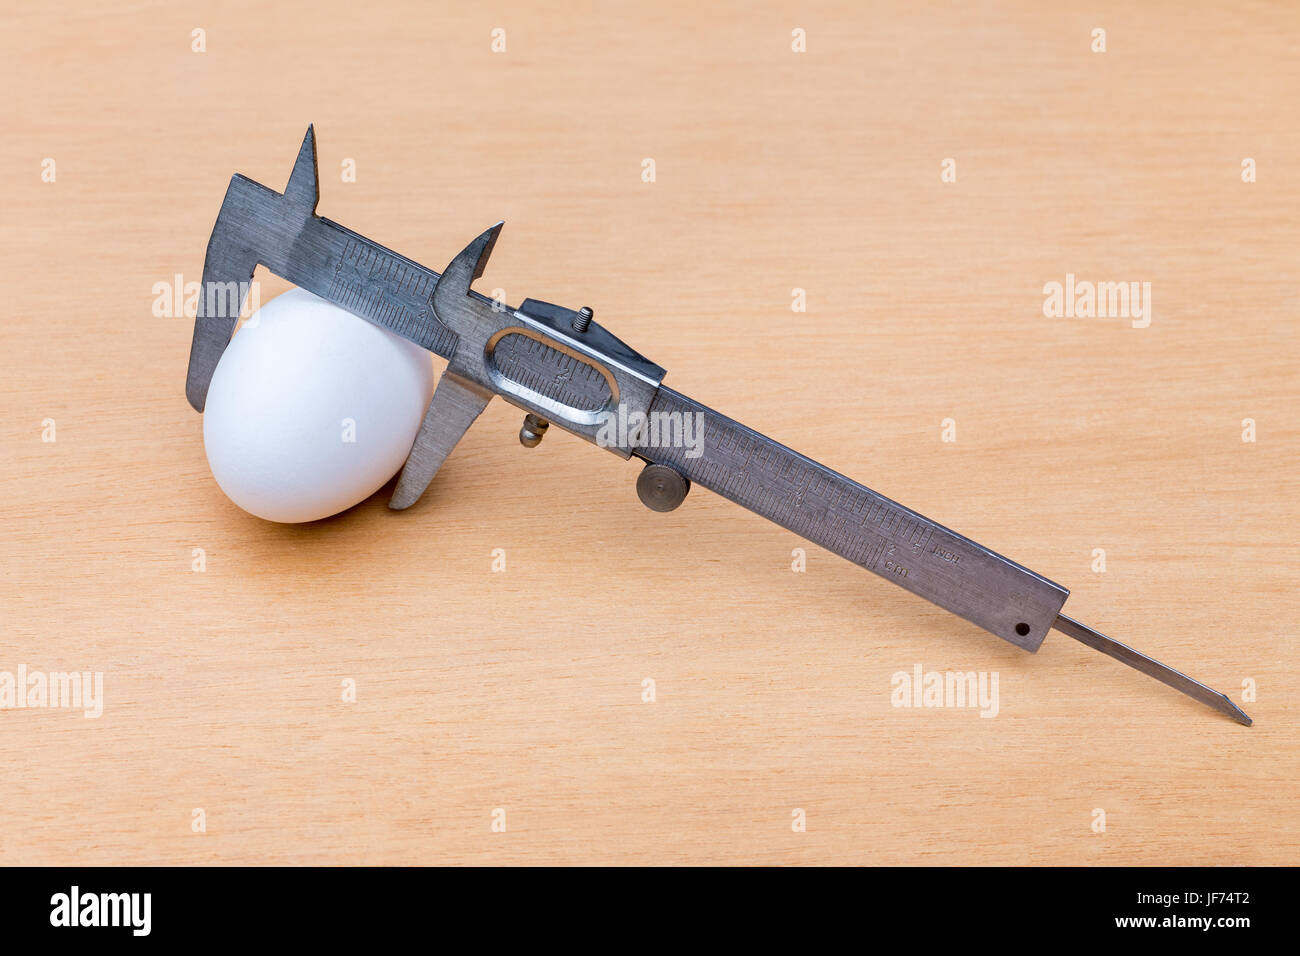 Vernier caliper measuring white chicken egg - Stock Image